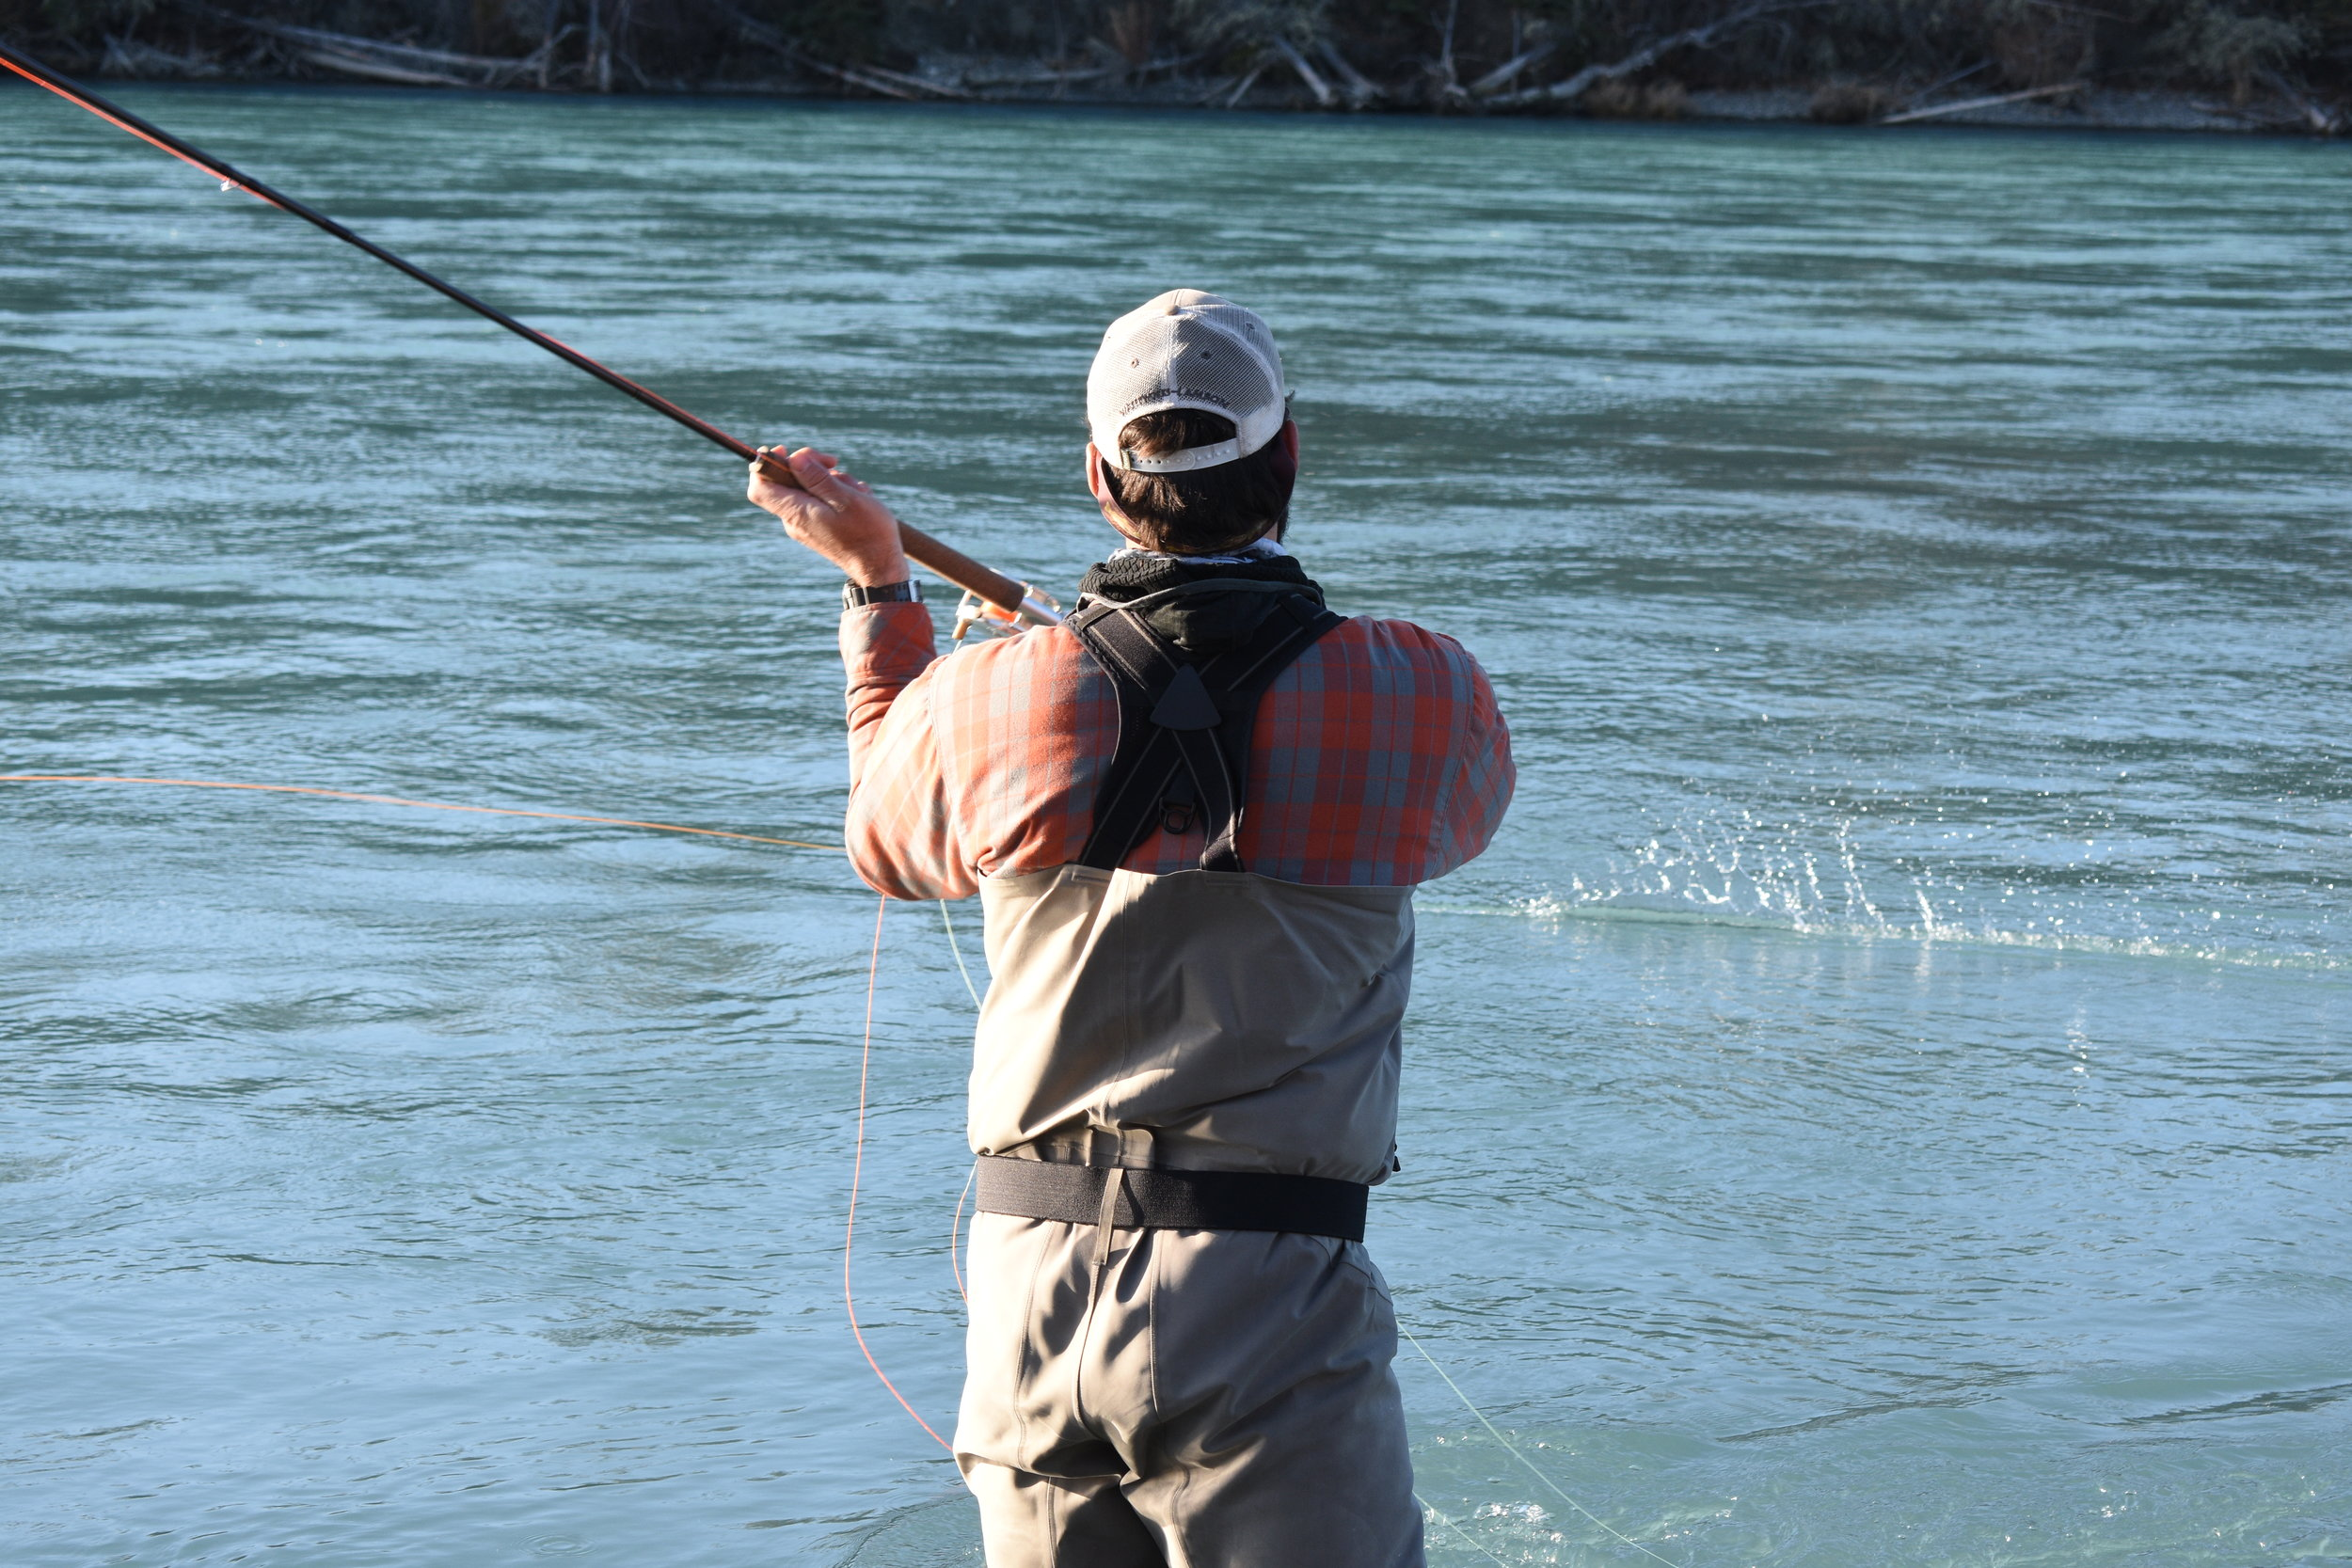 An afternoon spent Spey Casting on the    Middle Kenai River    for    Rainbow Trout    and    Silver Salmon   .